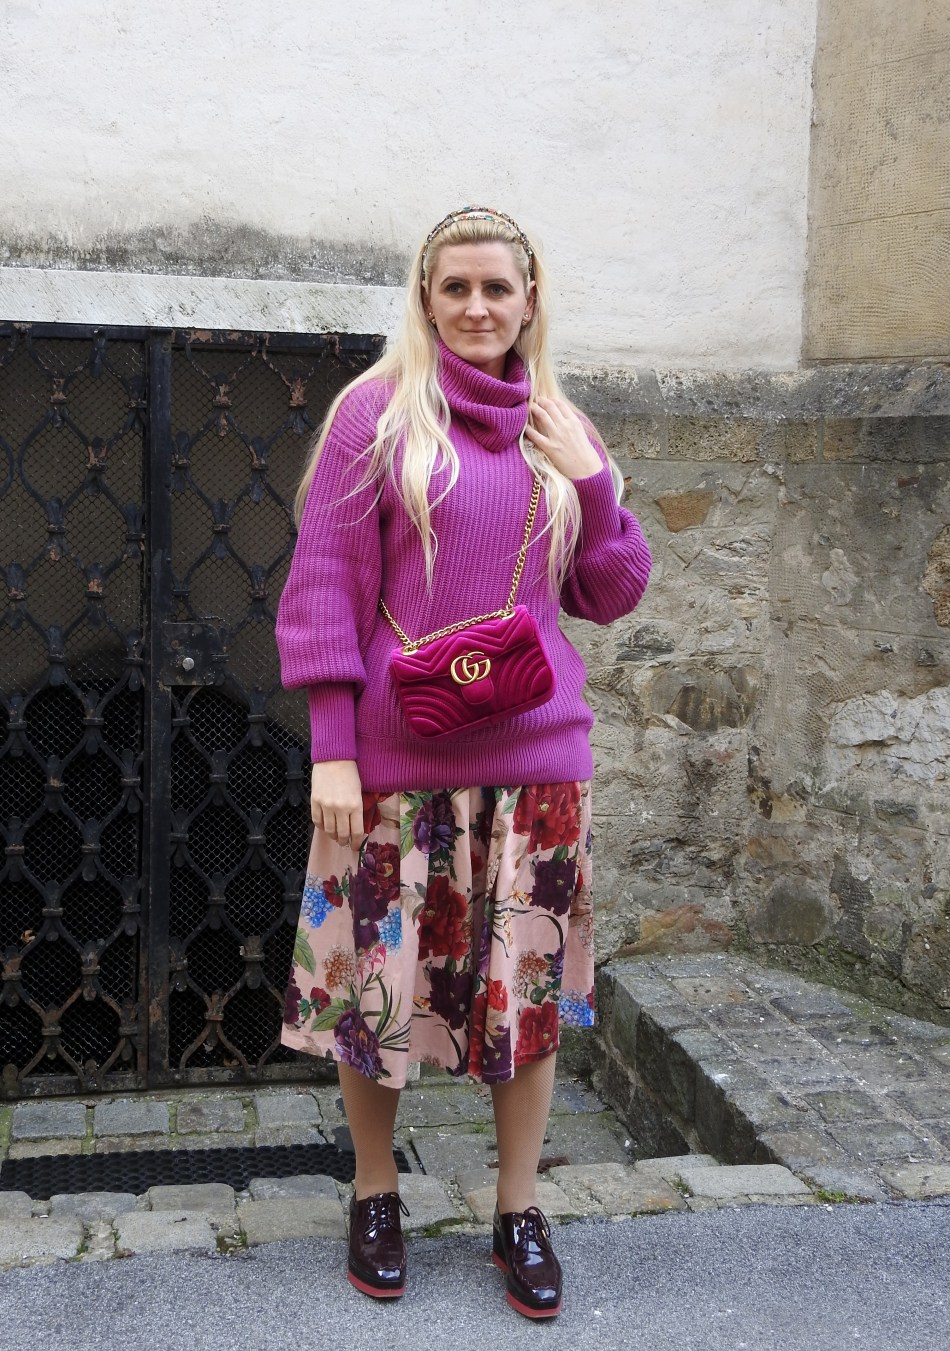 Pantone-Colour-2018-Ultra-Violett-lilac-Flowerprint-Skirt-Zara-Gucci-Velvet-Bag-Sweater-H&M-carrieslifestyle-Tamara-Prutsch